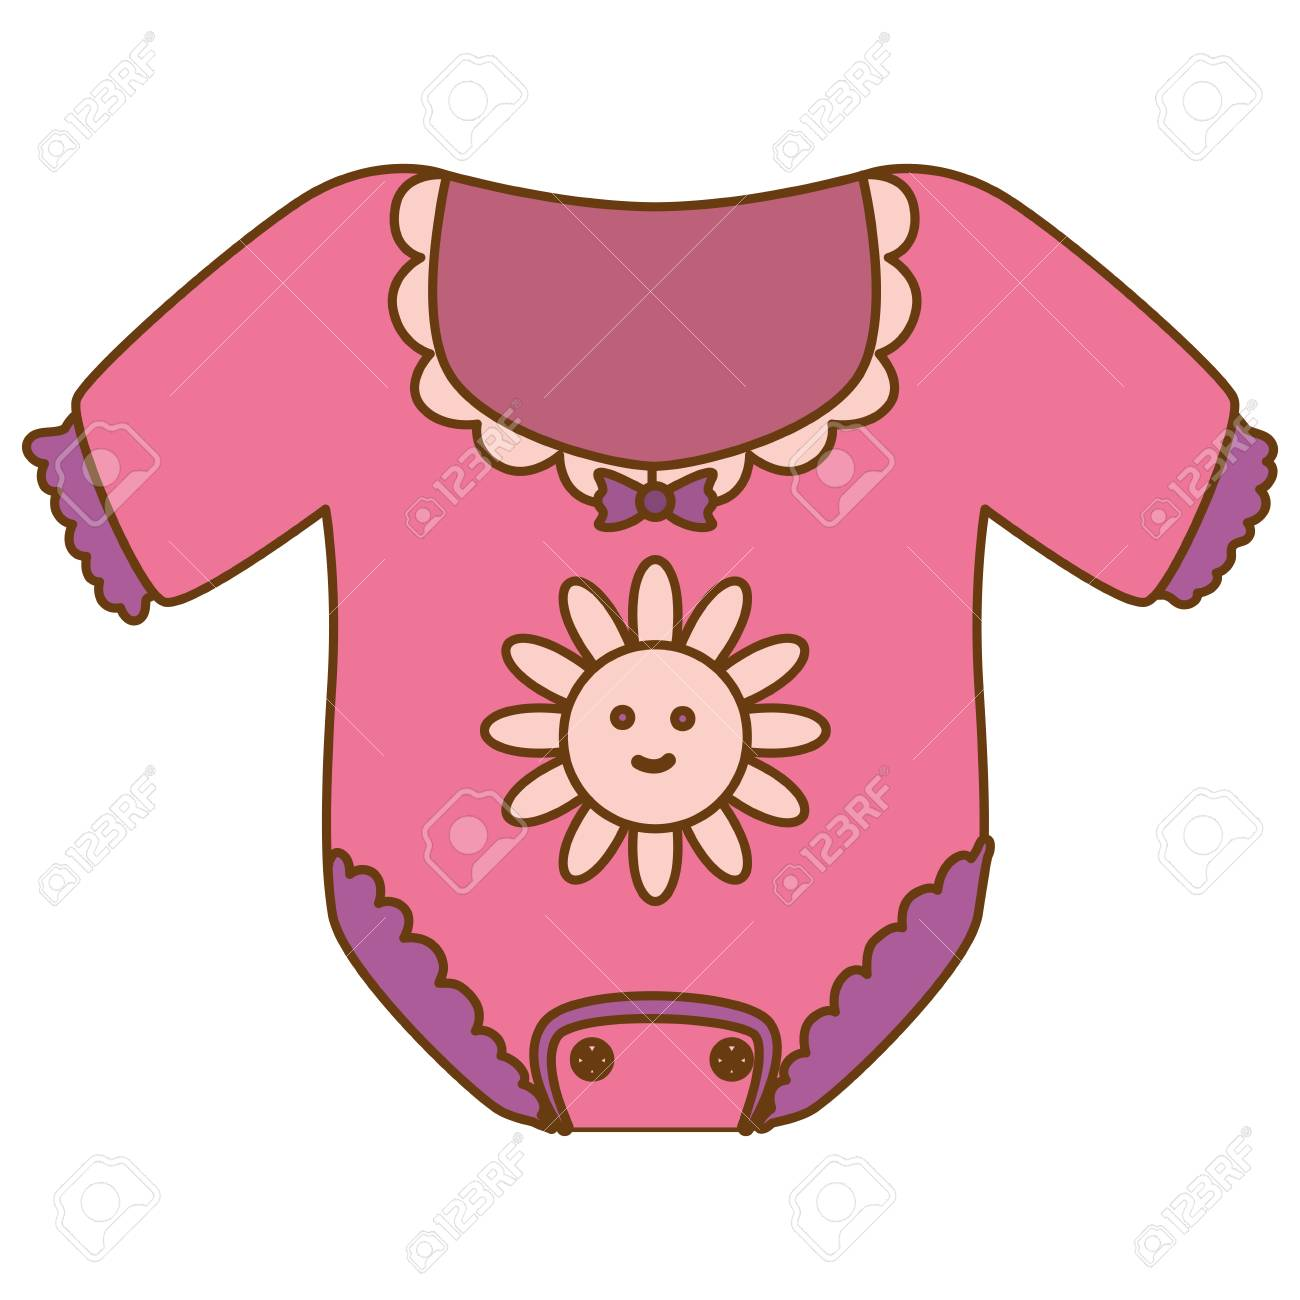 Girl Onesie Baby Shower Related Icon Image Vector Illustration